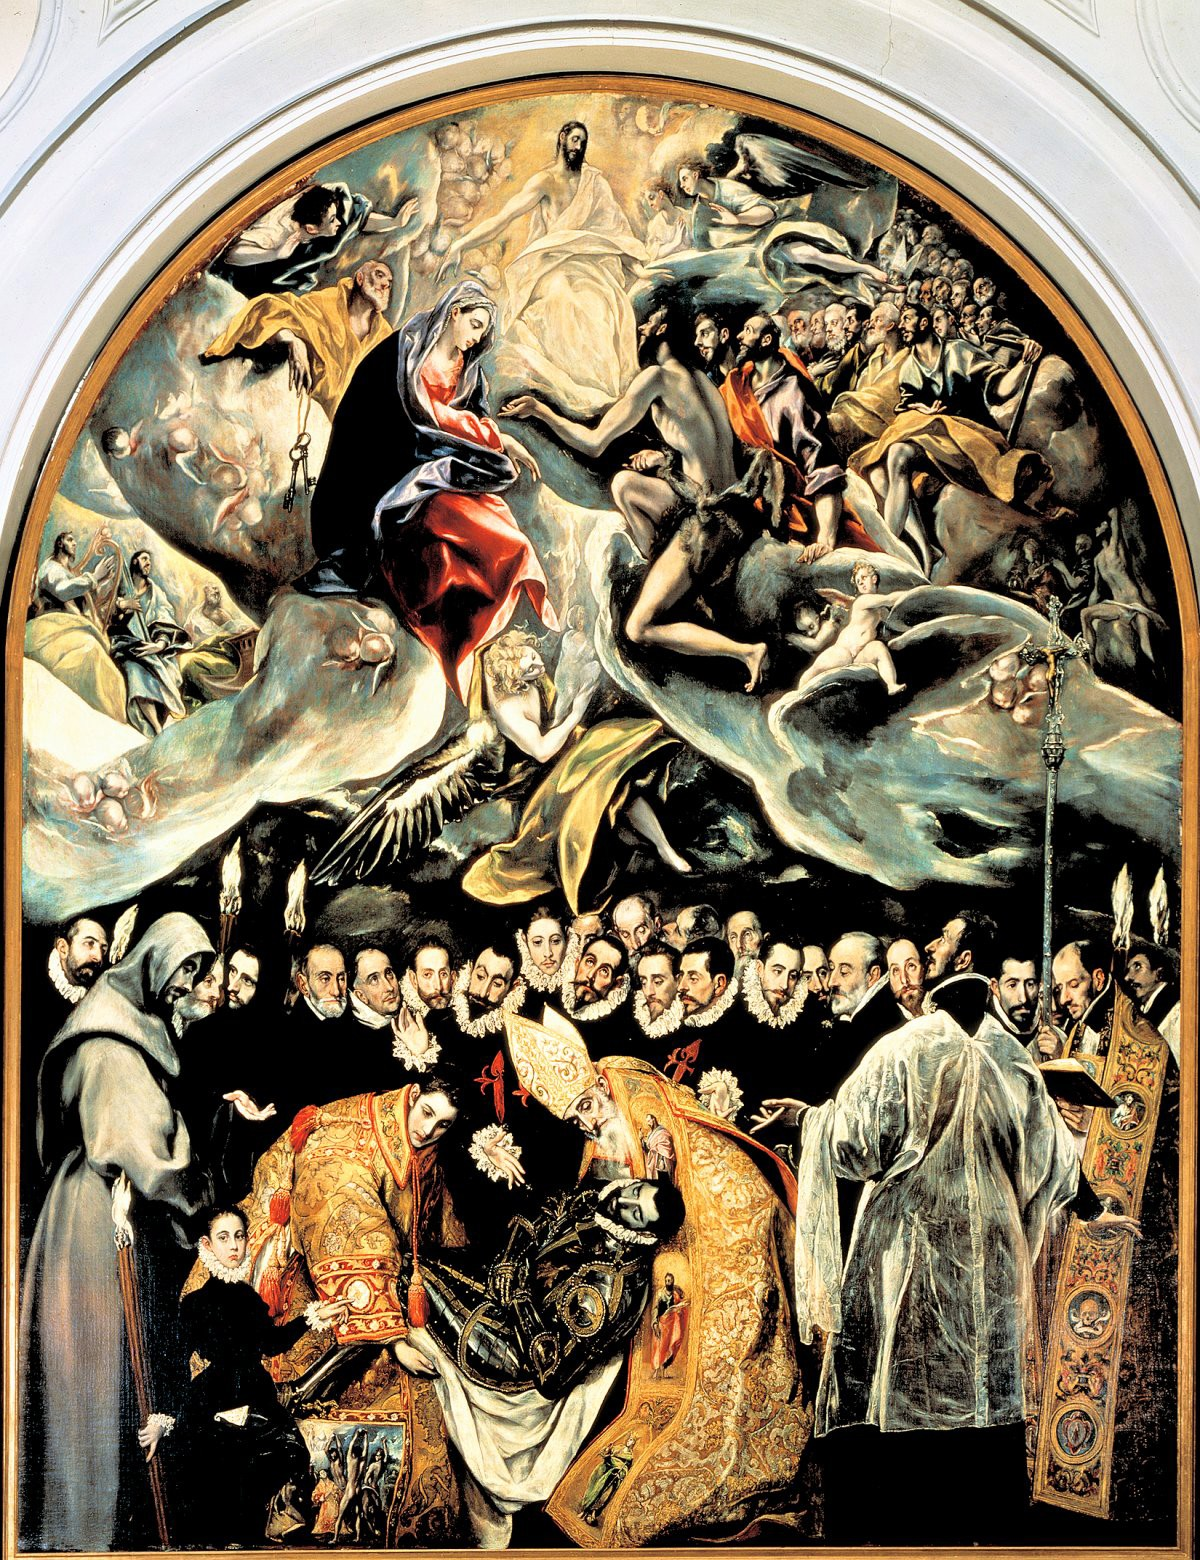 00 El Greco (Domenikos Theotkopoulos). The Burial of Count Orgaz. Iglesia de Santo Tomé. Toledo SPAIN. 1586